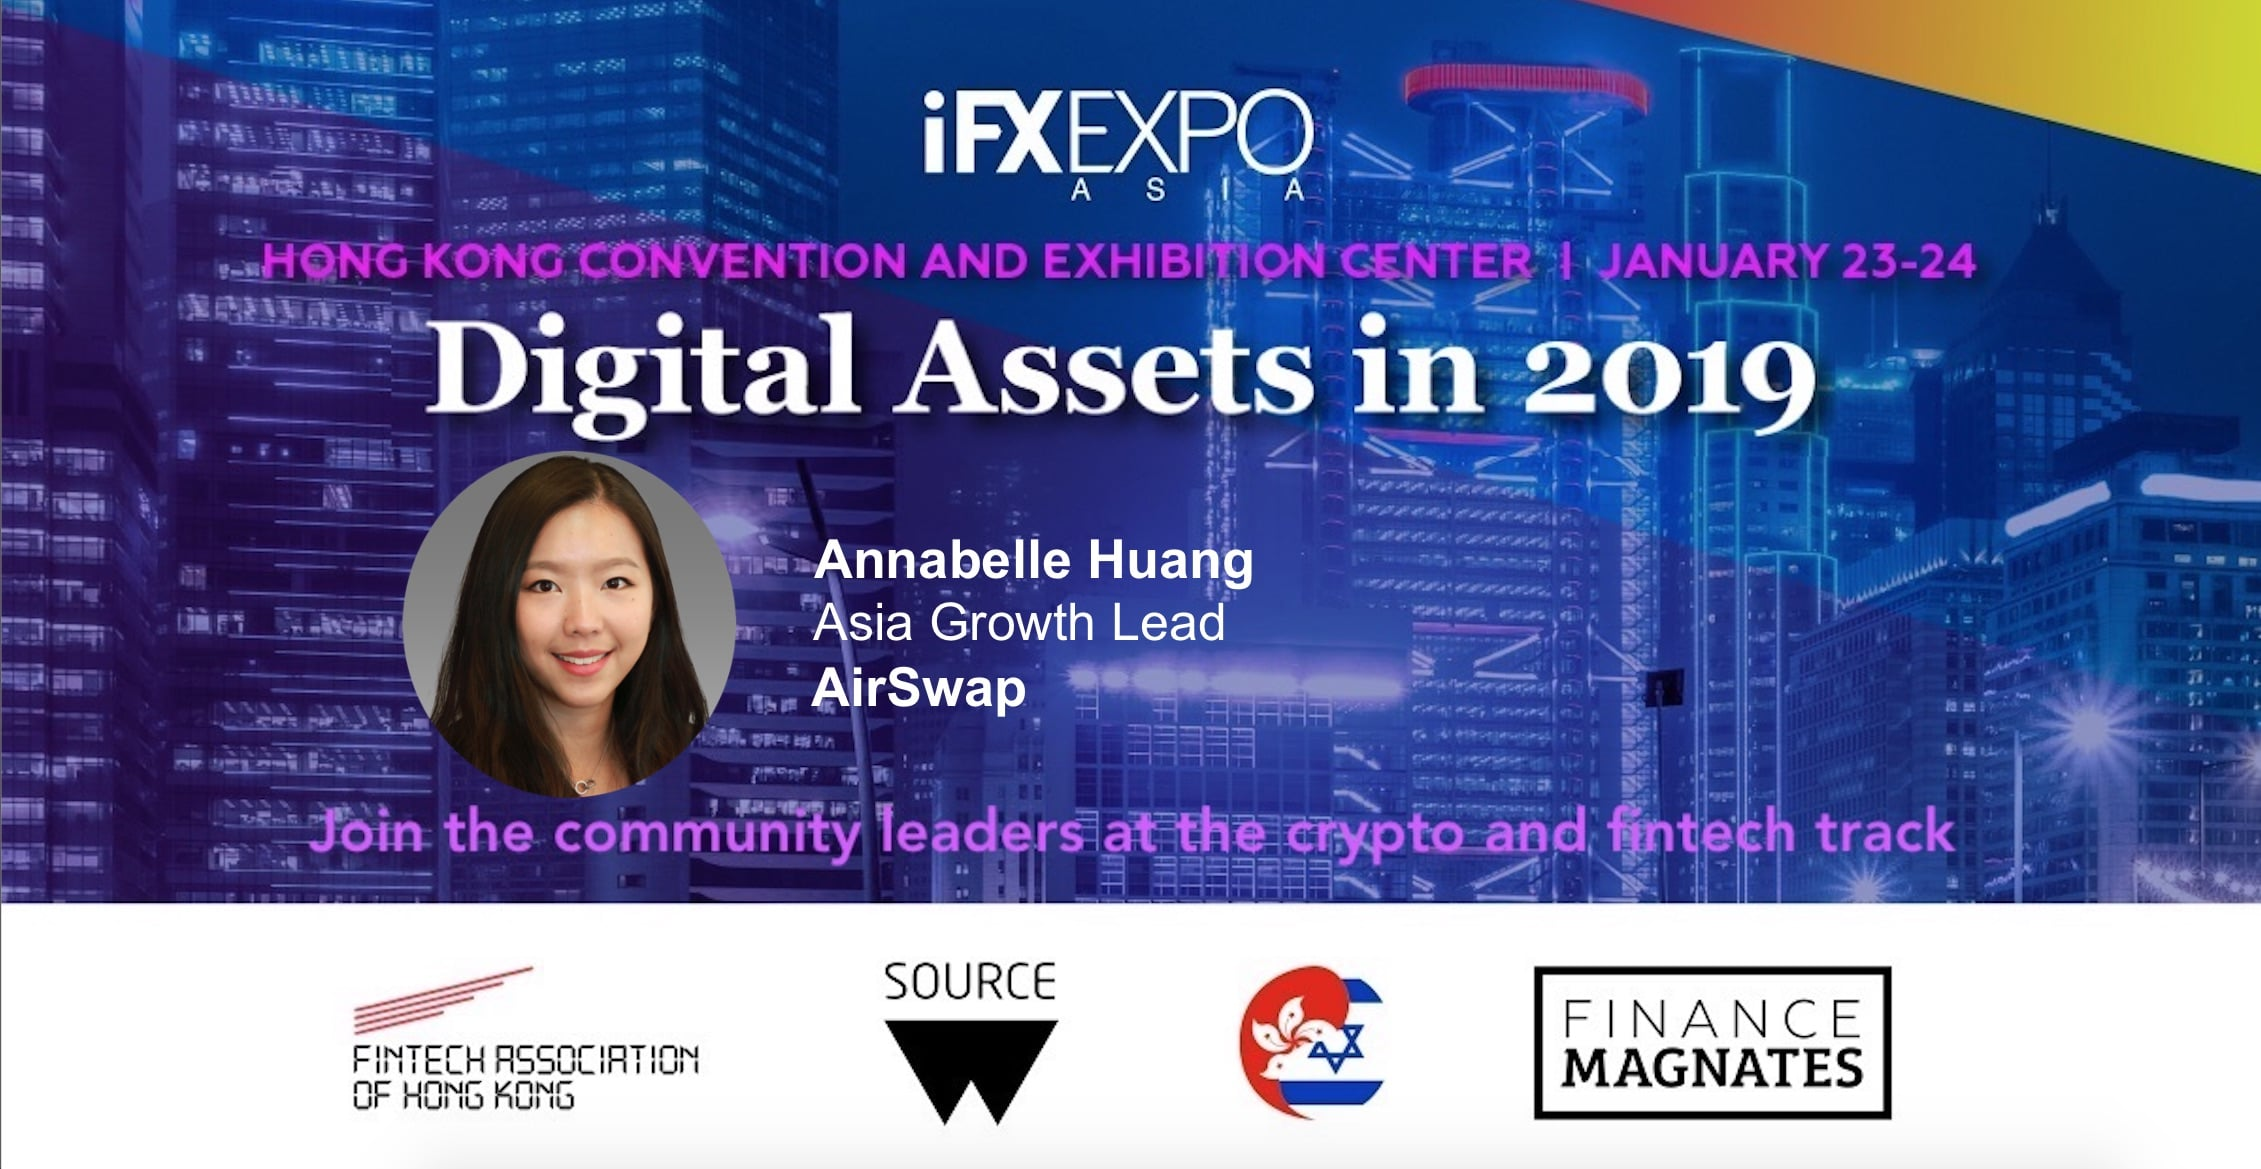 Annabelle Huang, Airswap, IFX EXPO